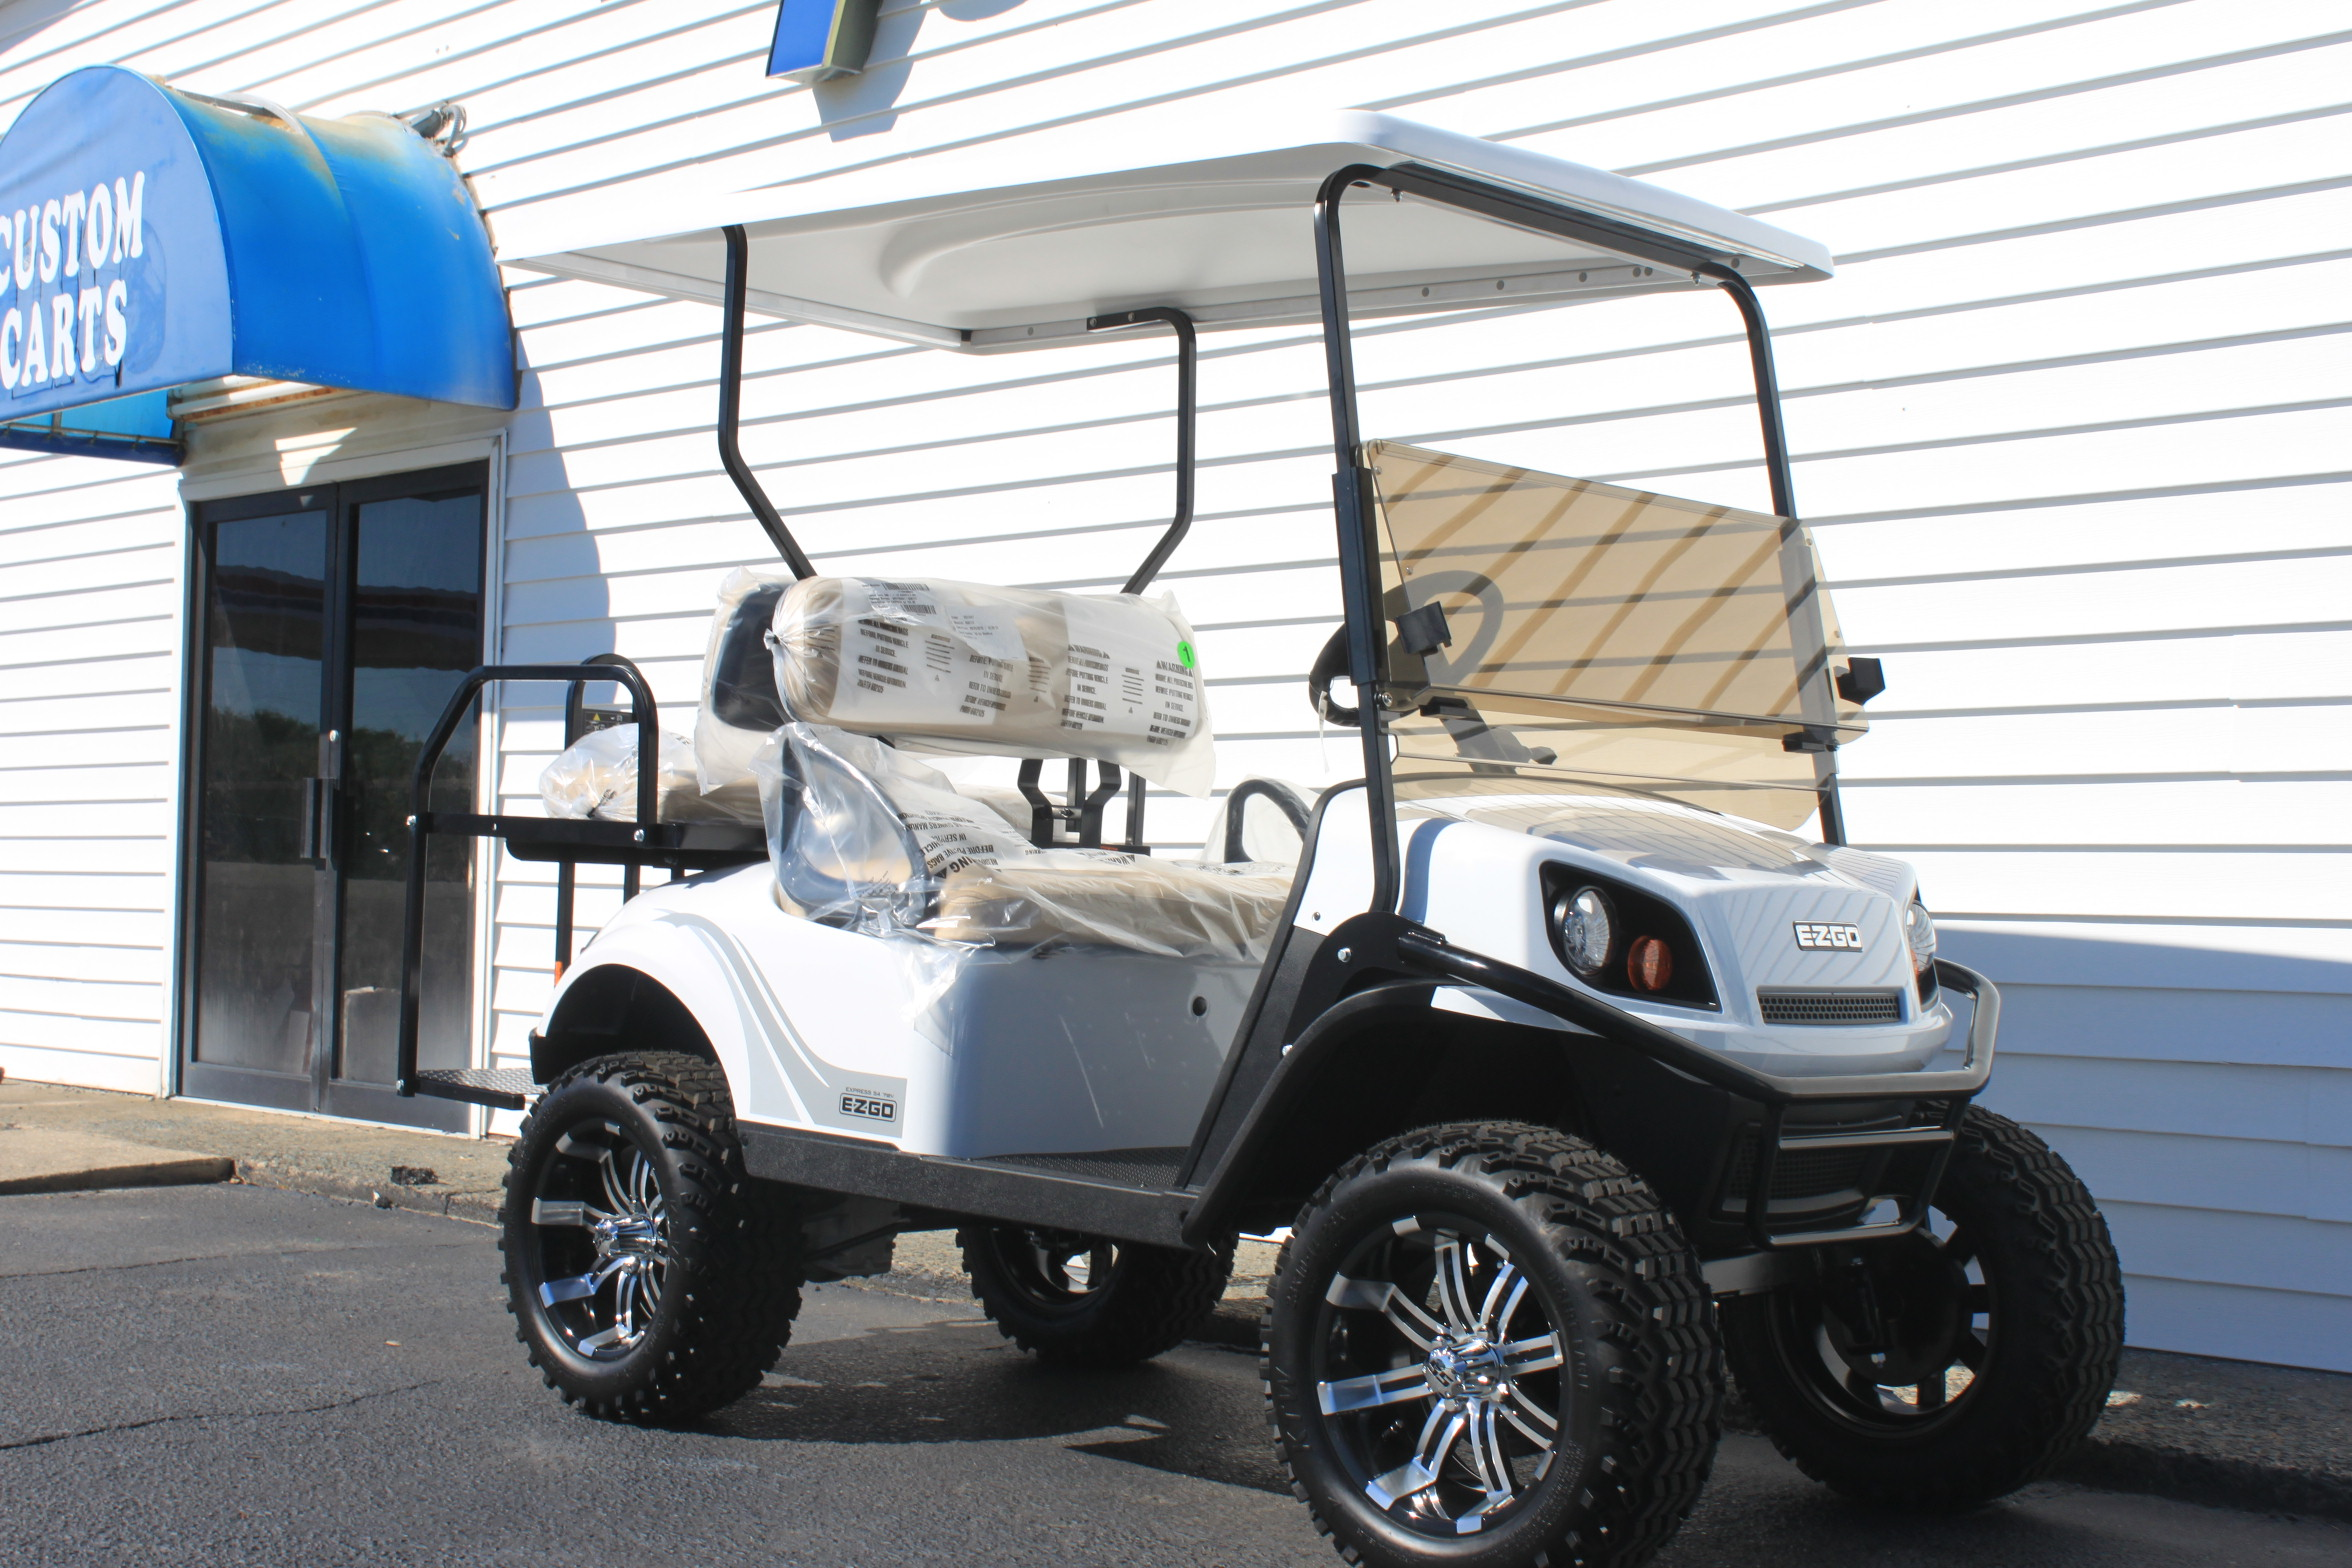 STOCK# 3455142, 2020 E-Z-GO S4 EXPRESS 72 VT GOLF CART